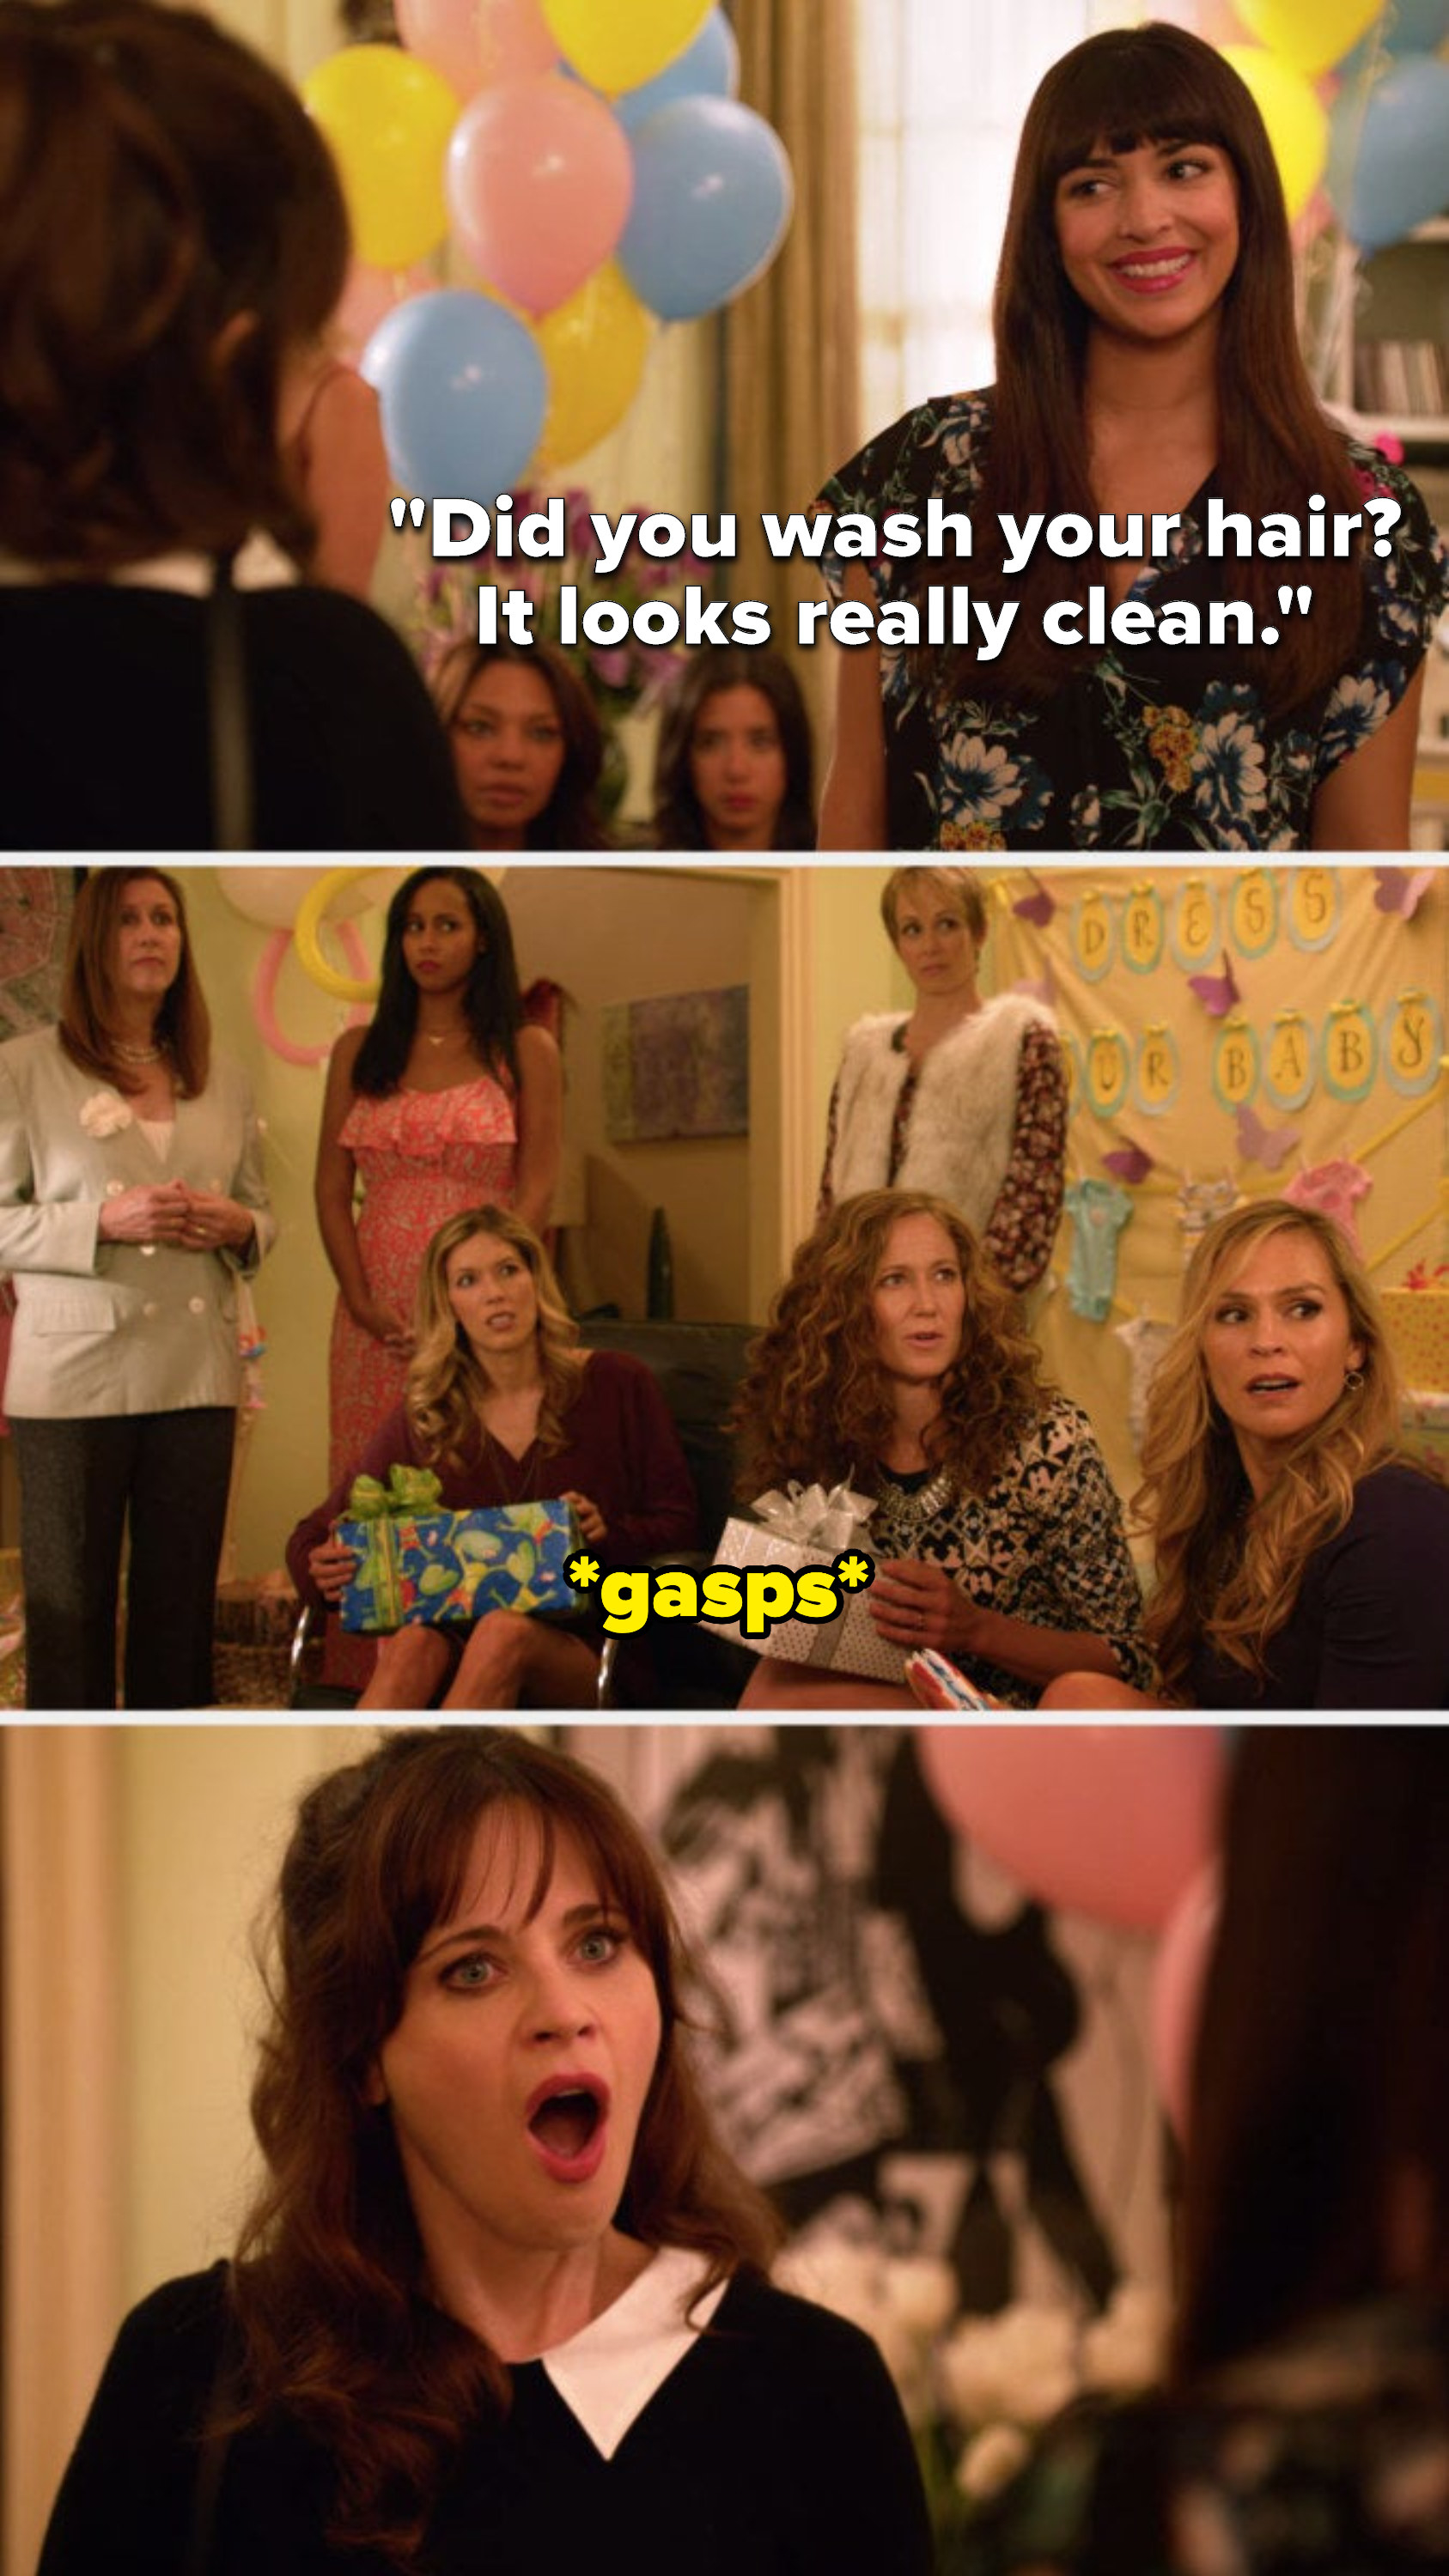 Cece says to Jess, Did you wash your hair, it looks really clean, and all of the women around gasp, including Jess